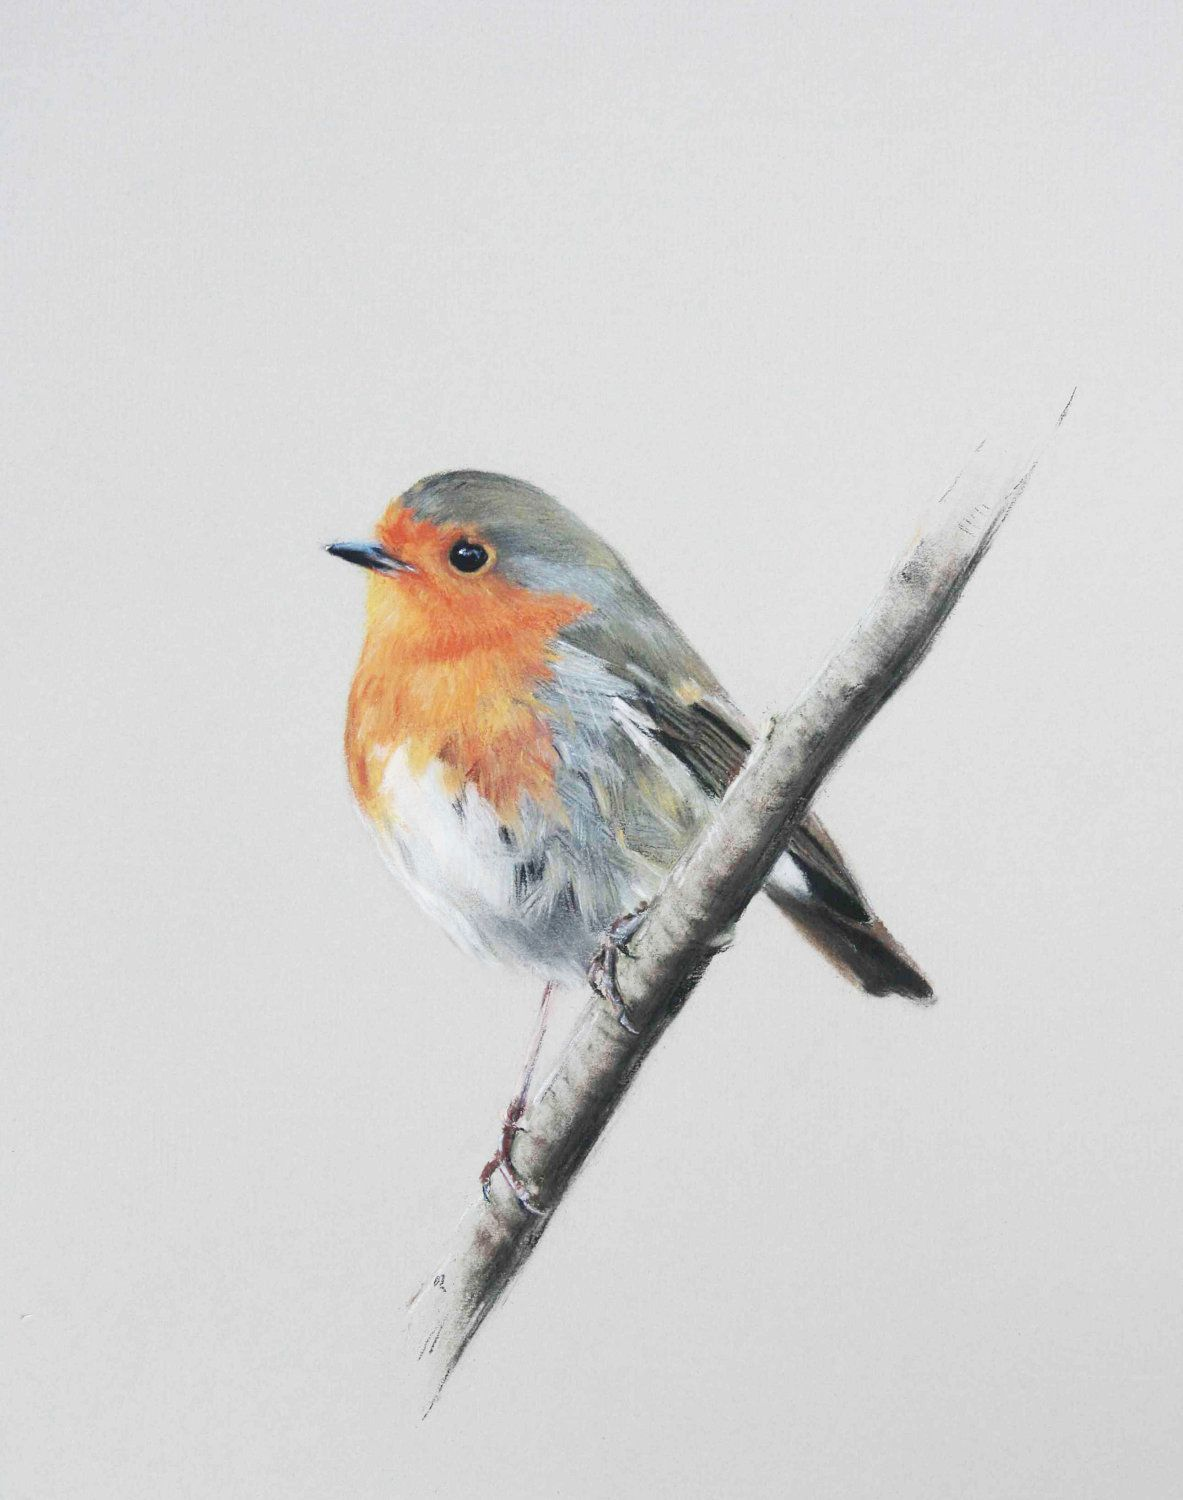 Rotkehlchen Aquarell Robin Limited Edition Giclee Print From Original Pastel Drawing By